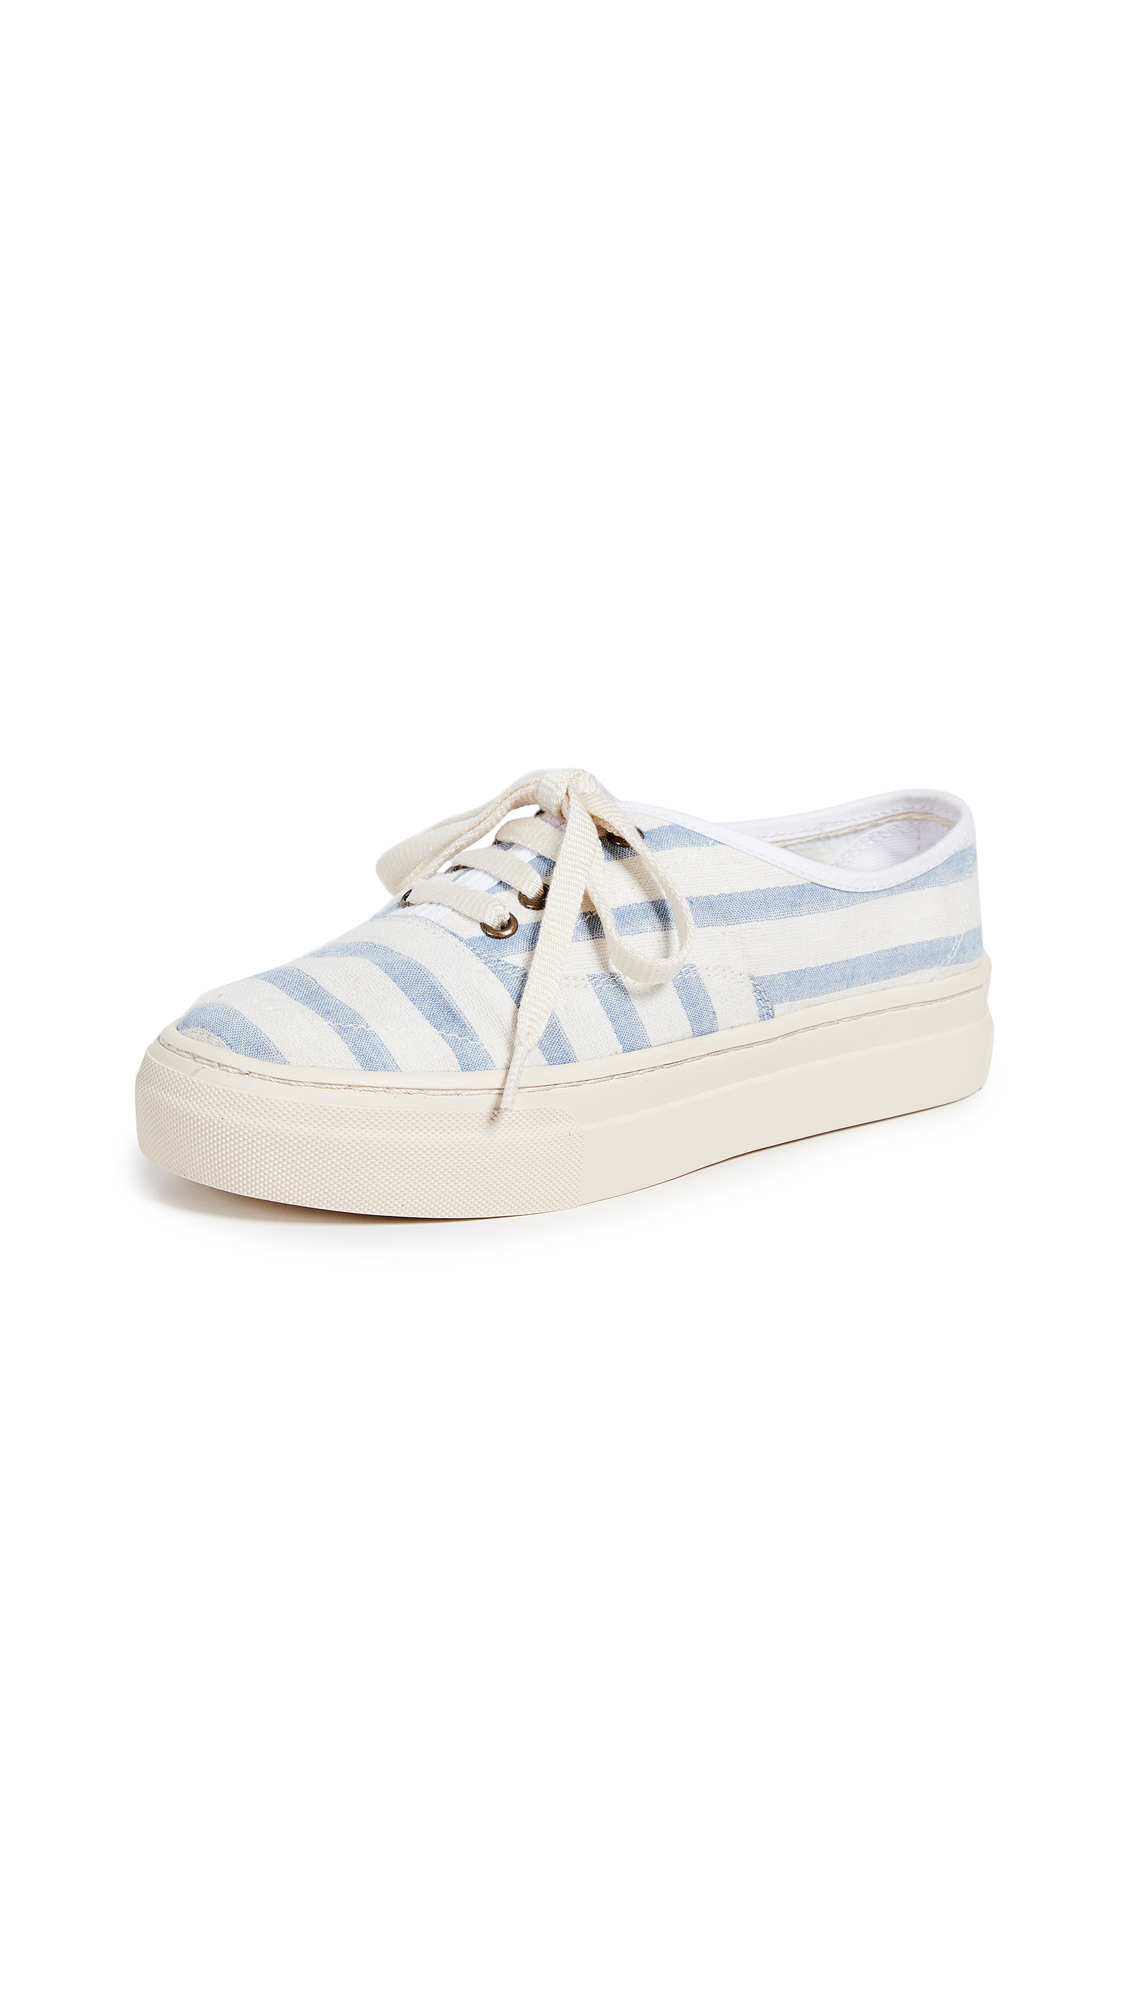 Soludos Platform Stripe Sneakers - Natural/Blue